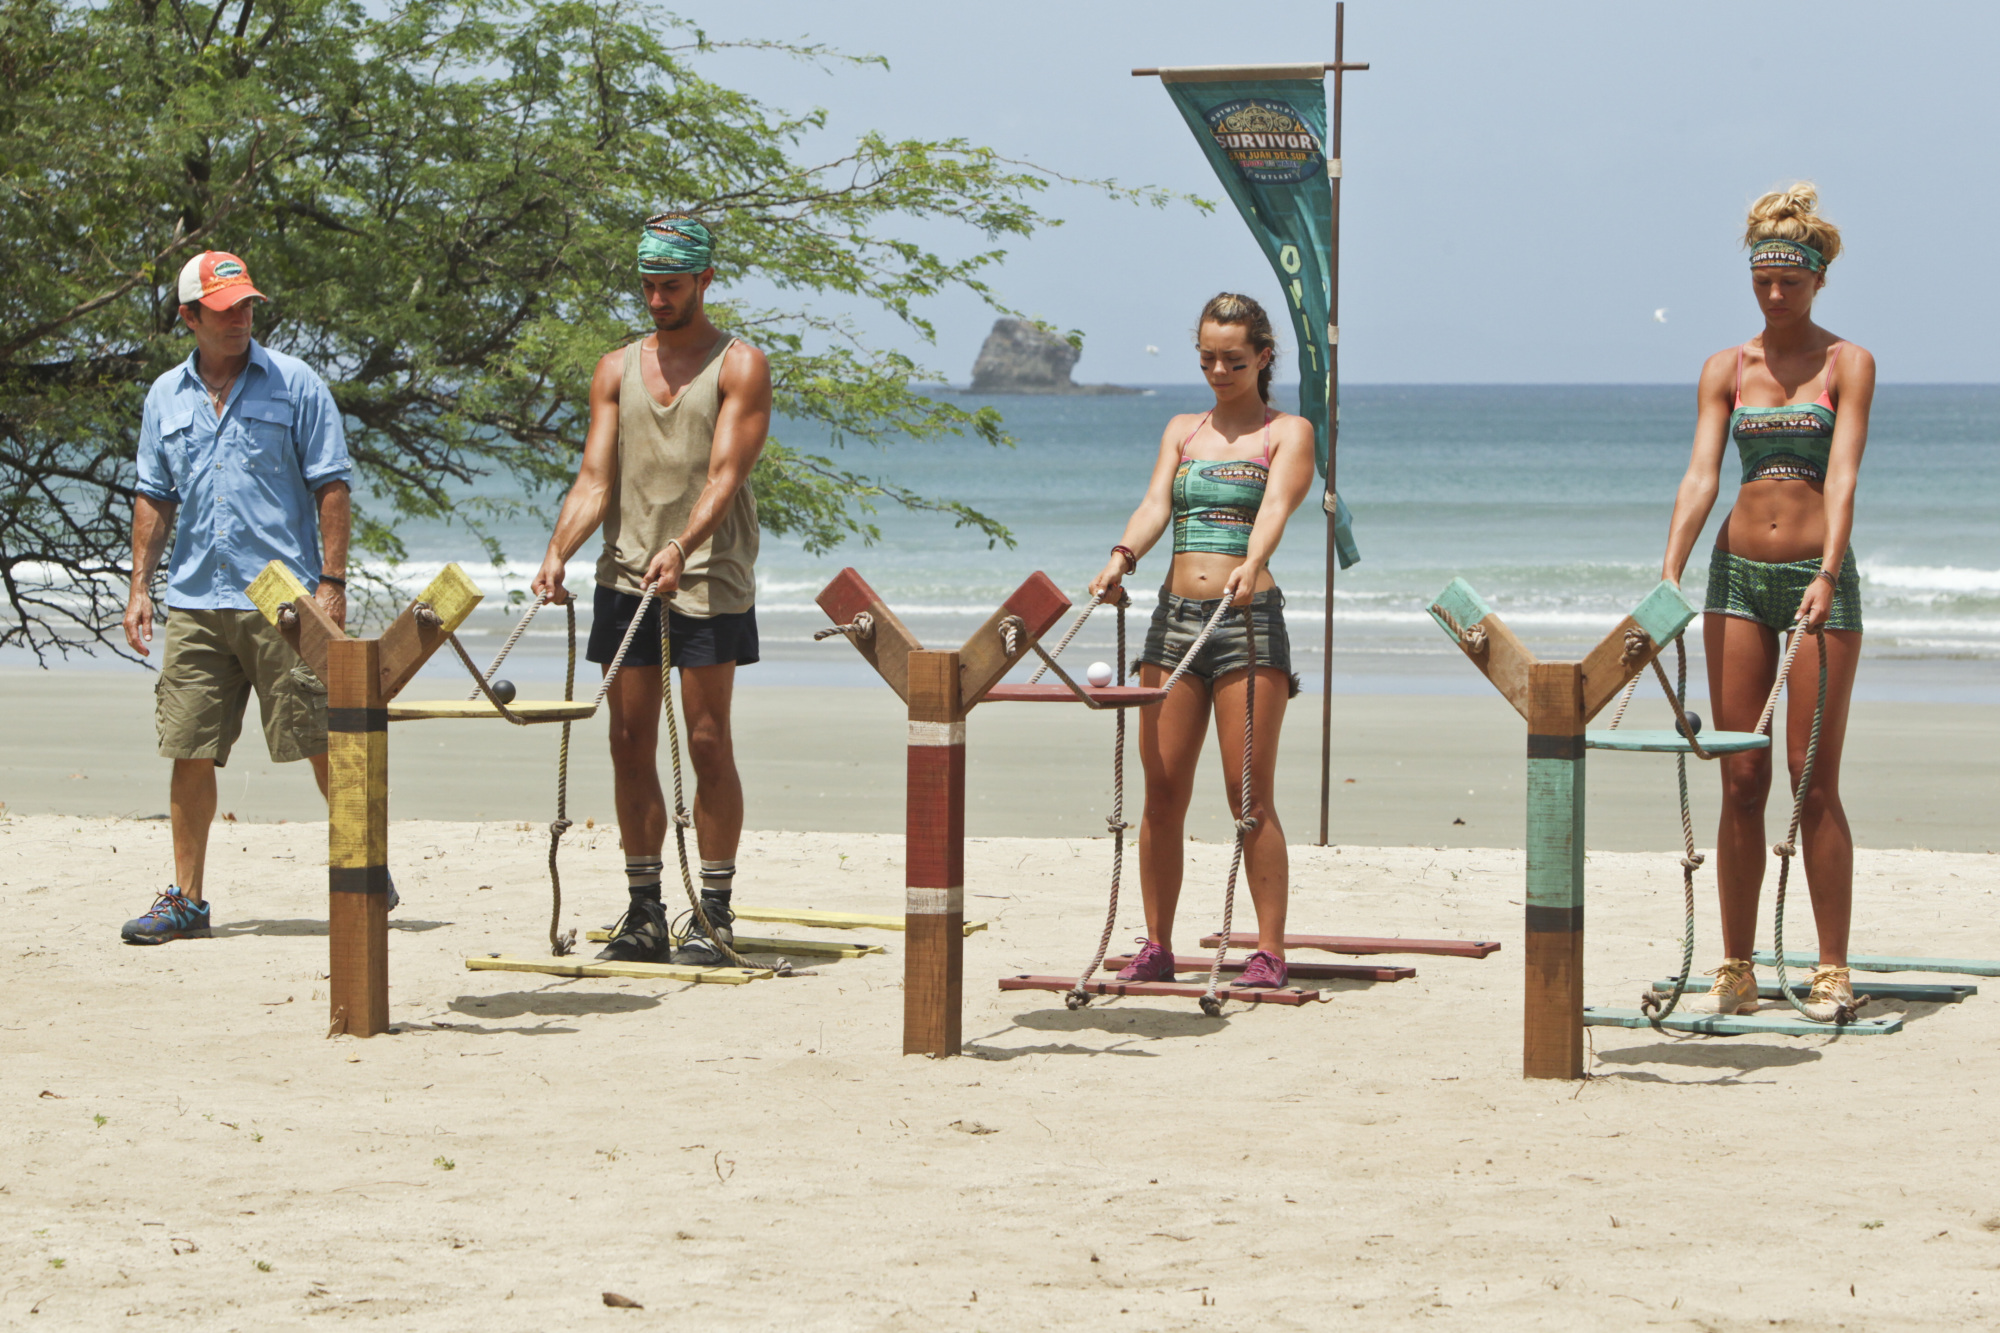 Jeff watches as castaways compete